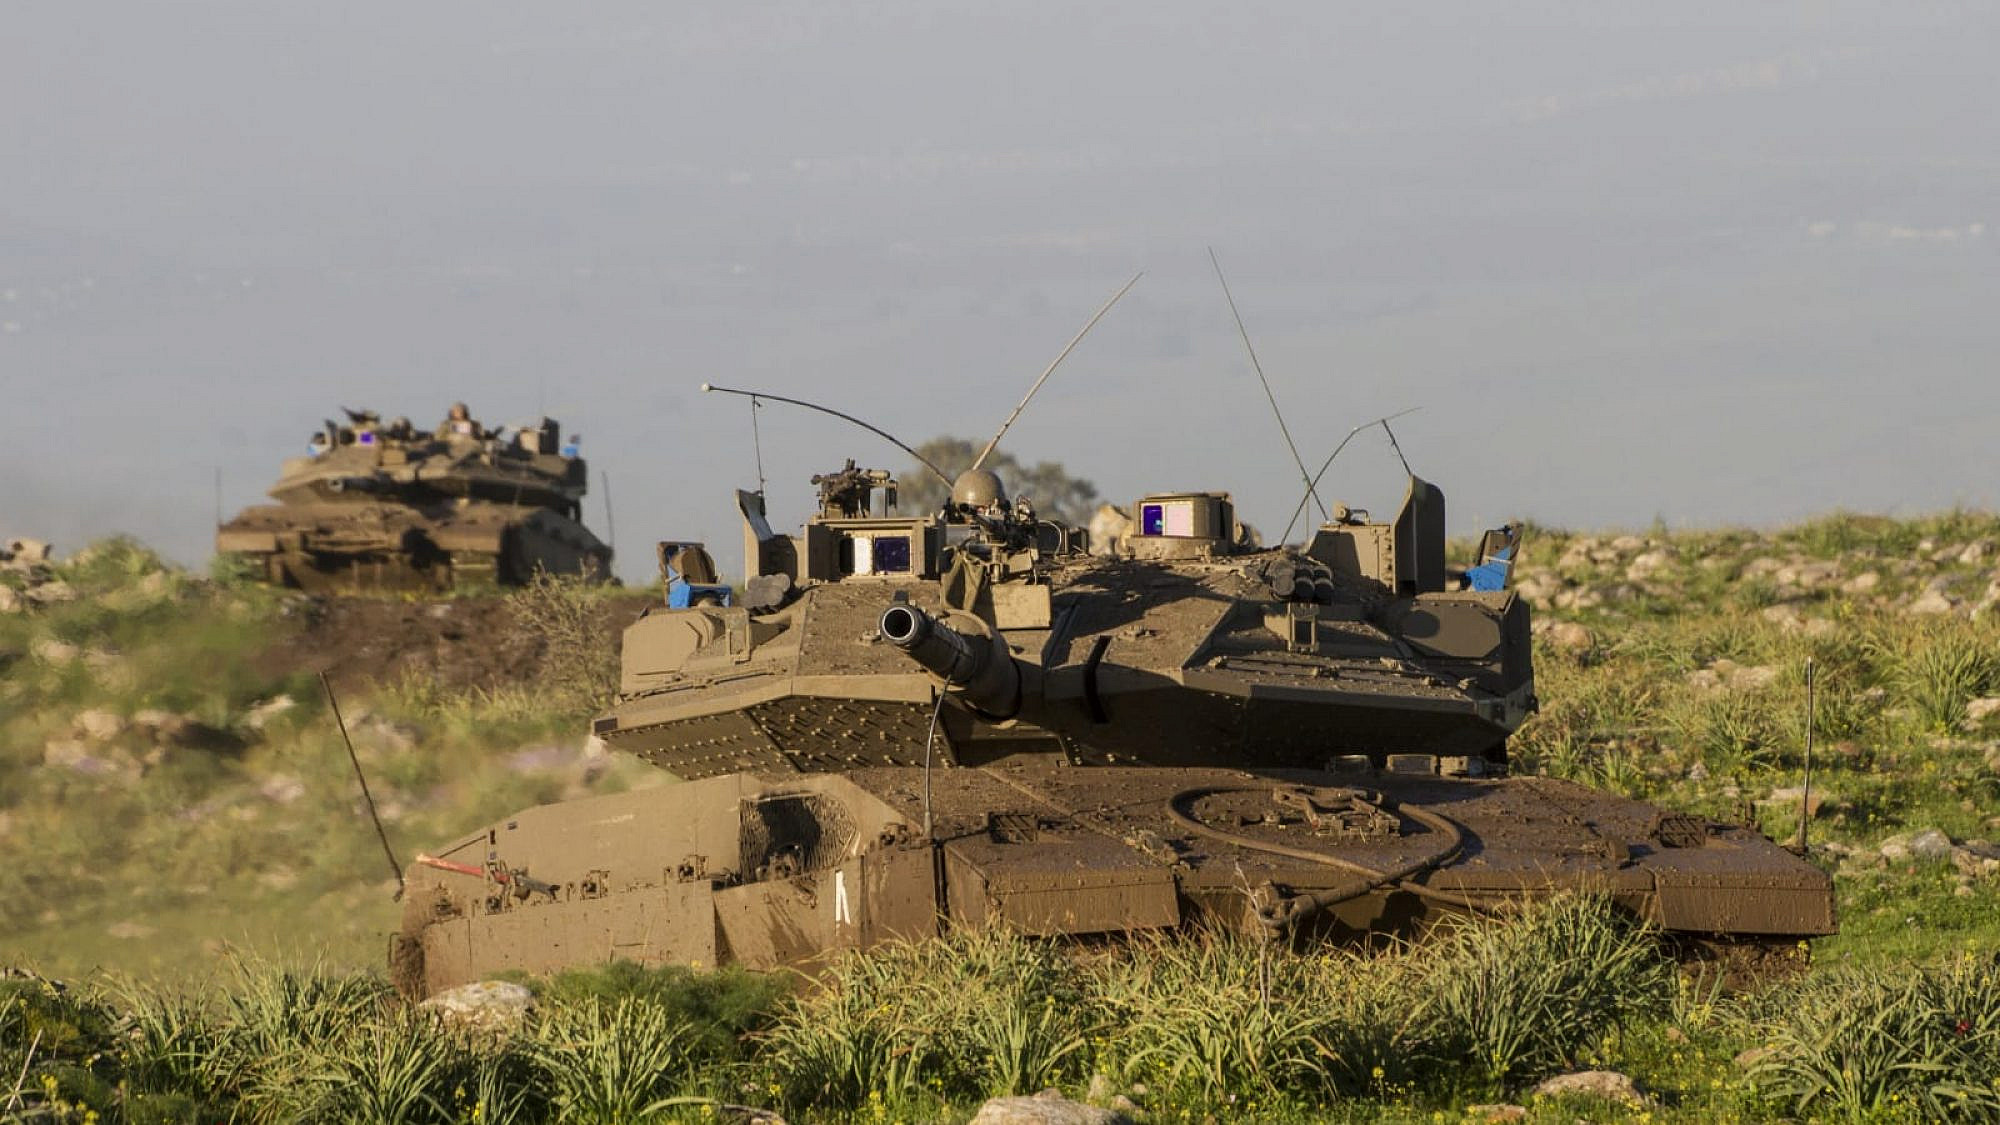 Rafael's Trophy system on an IDF Merkava 4 tank. Credit: Rafael Advanced Defense Systems.